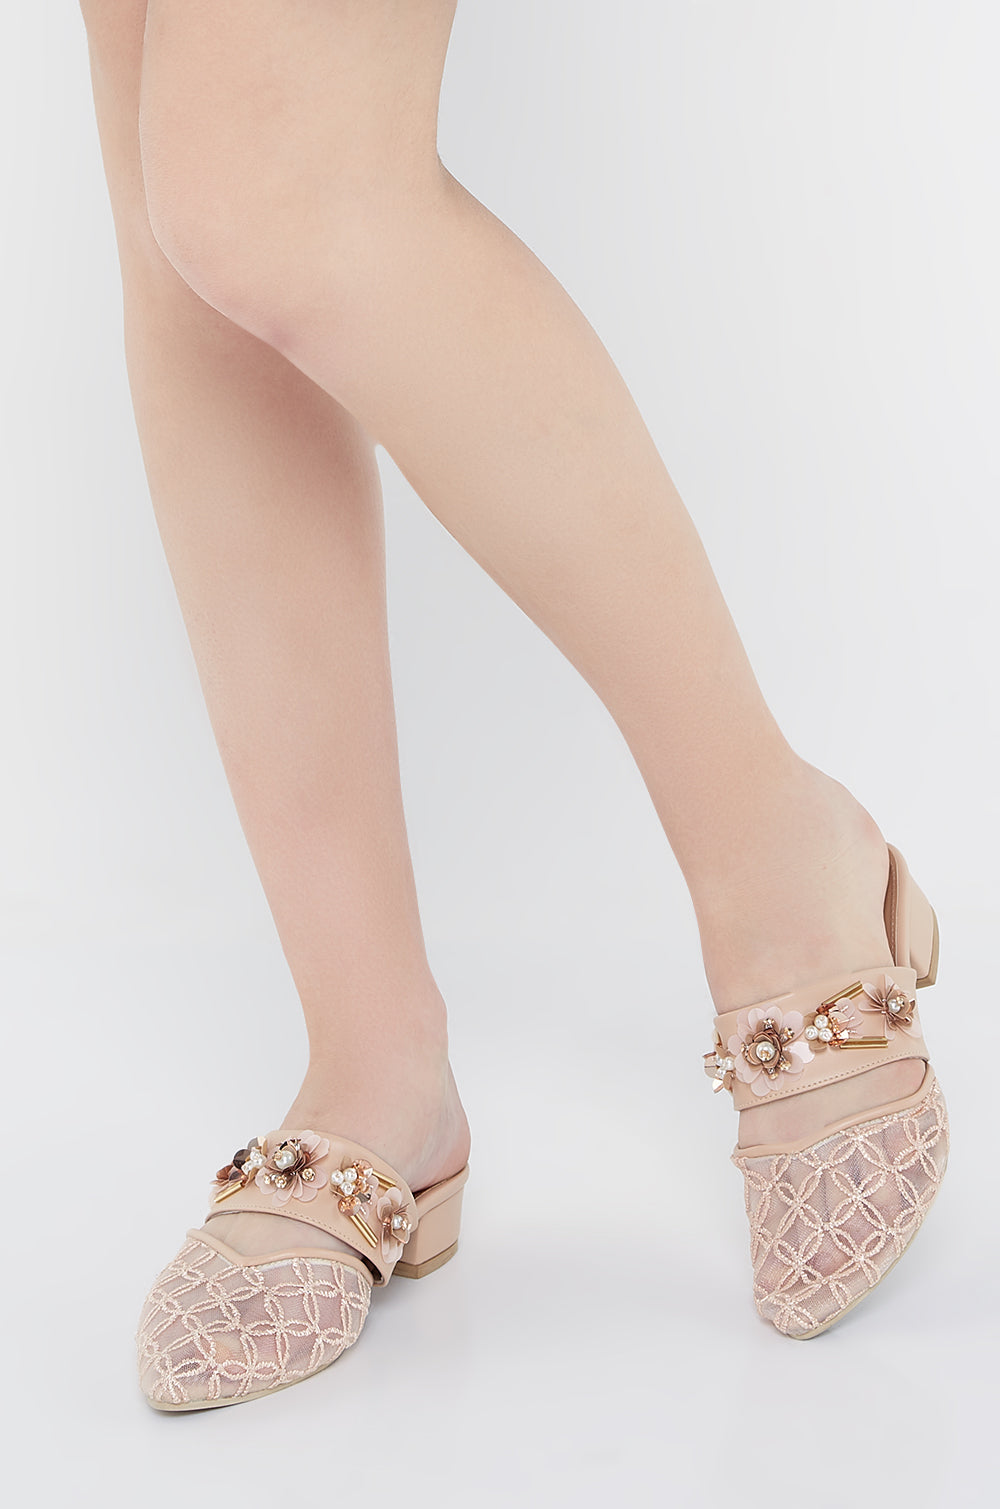 Namira Shoes In Nude